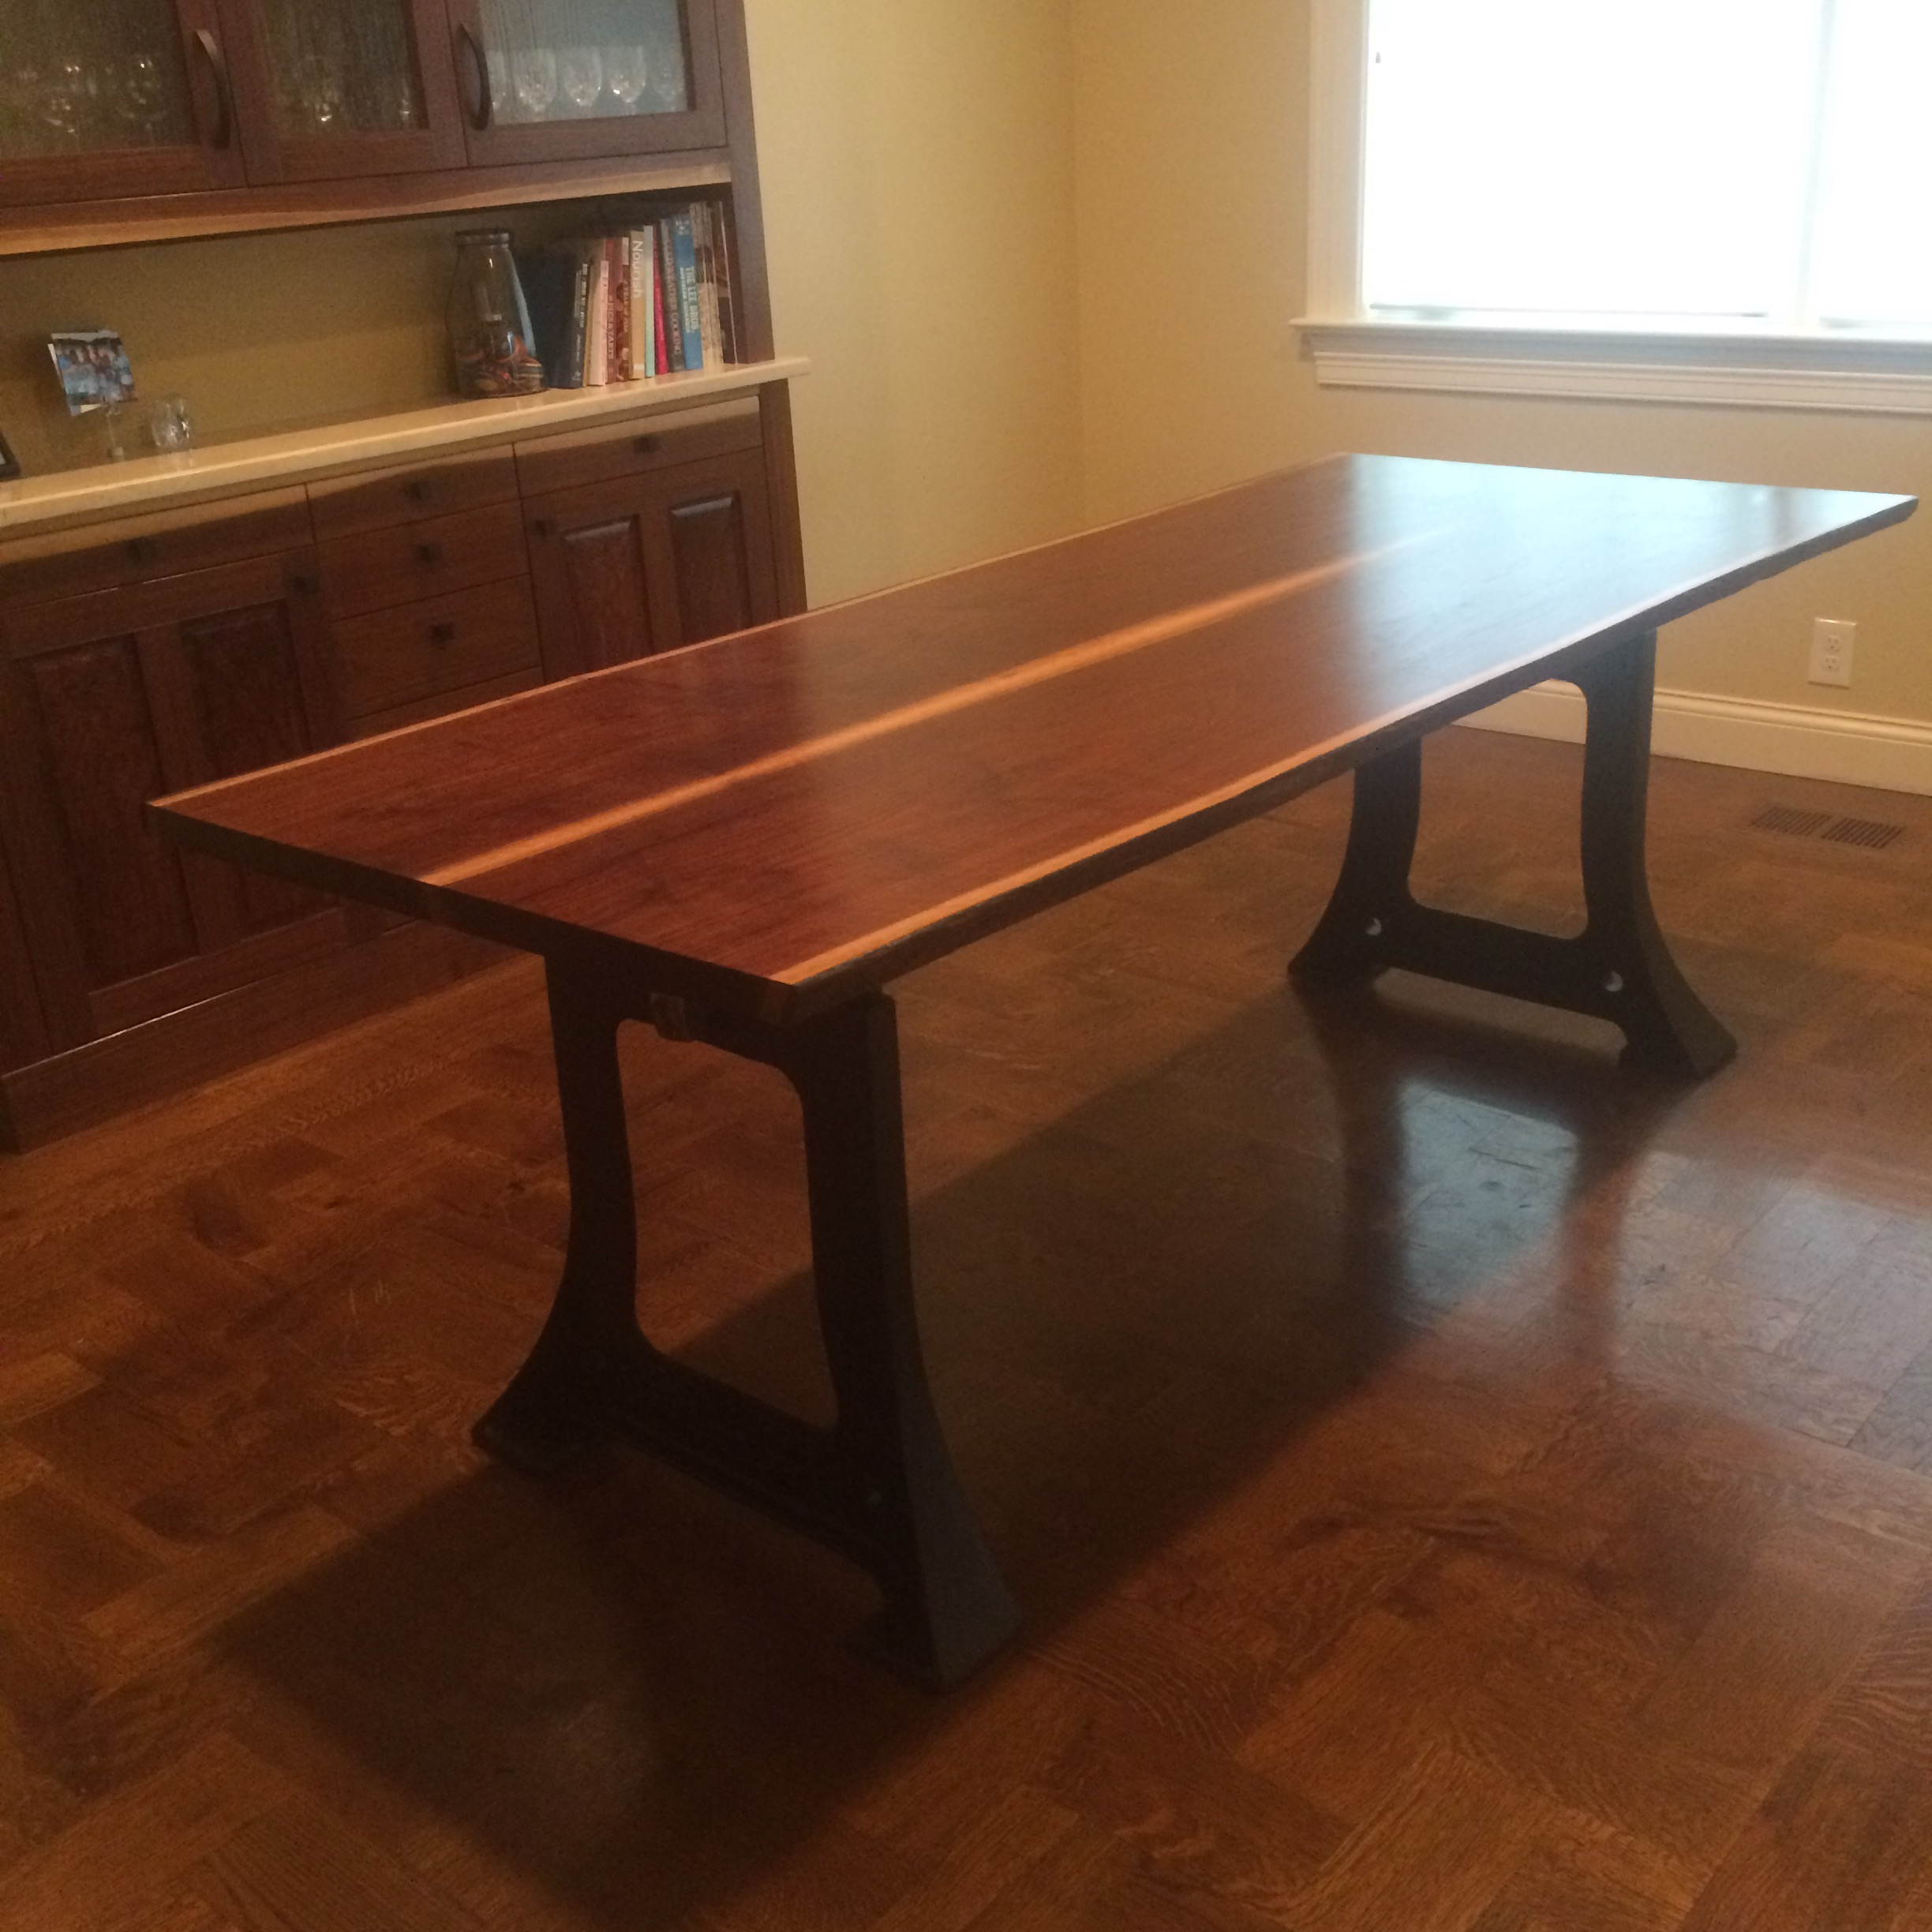 Walnut Kitchen Table: Walnut Table With Cast Iron Legs